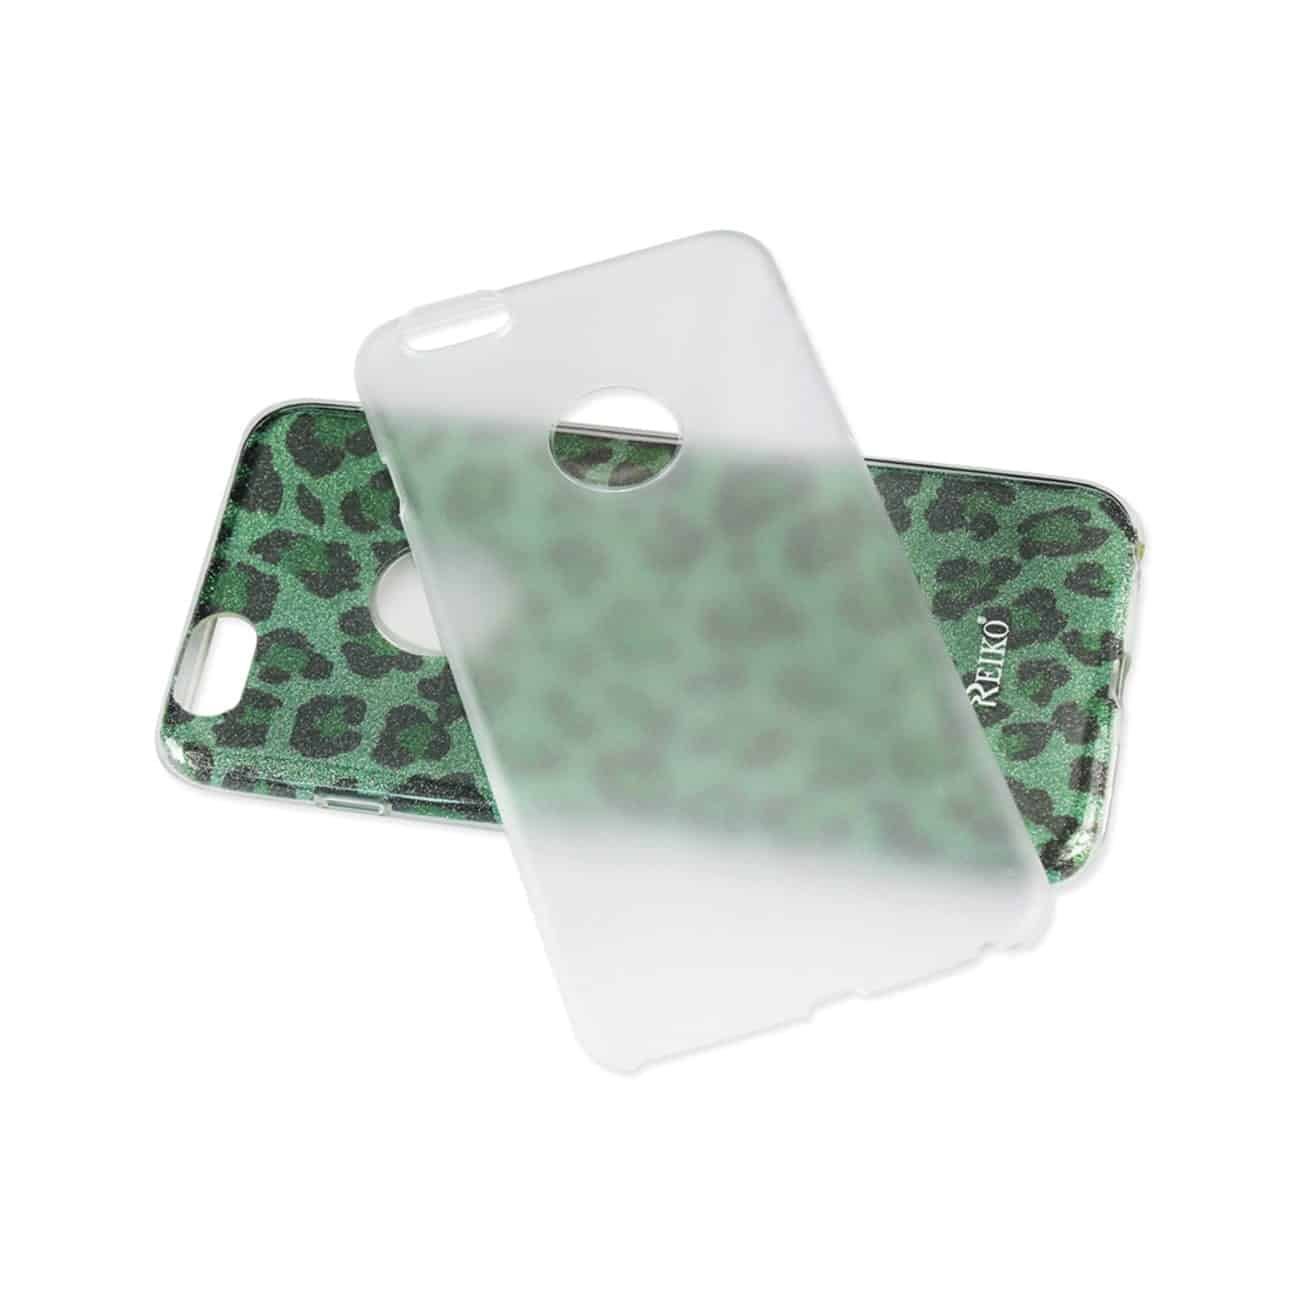 IPHONE 6/ 6S SHINE GLITTER SHIMMER LEOPARD HYBRID CASE IN LEOPARD GREEN